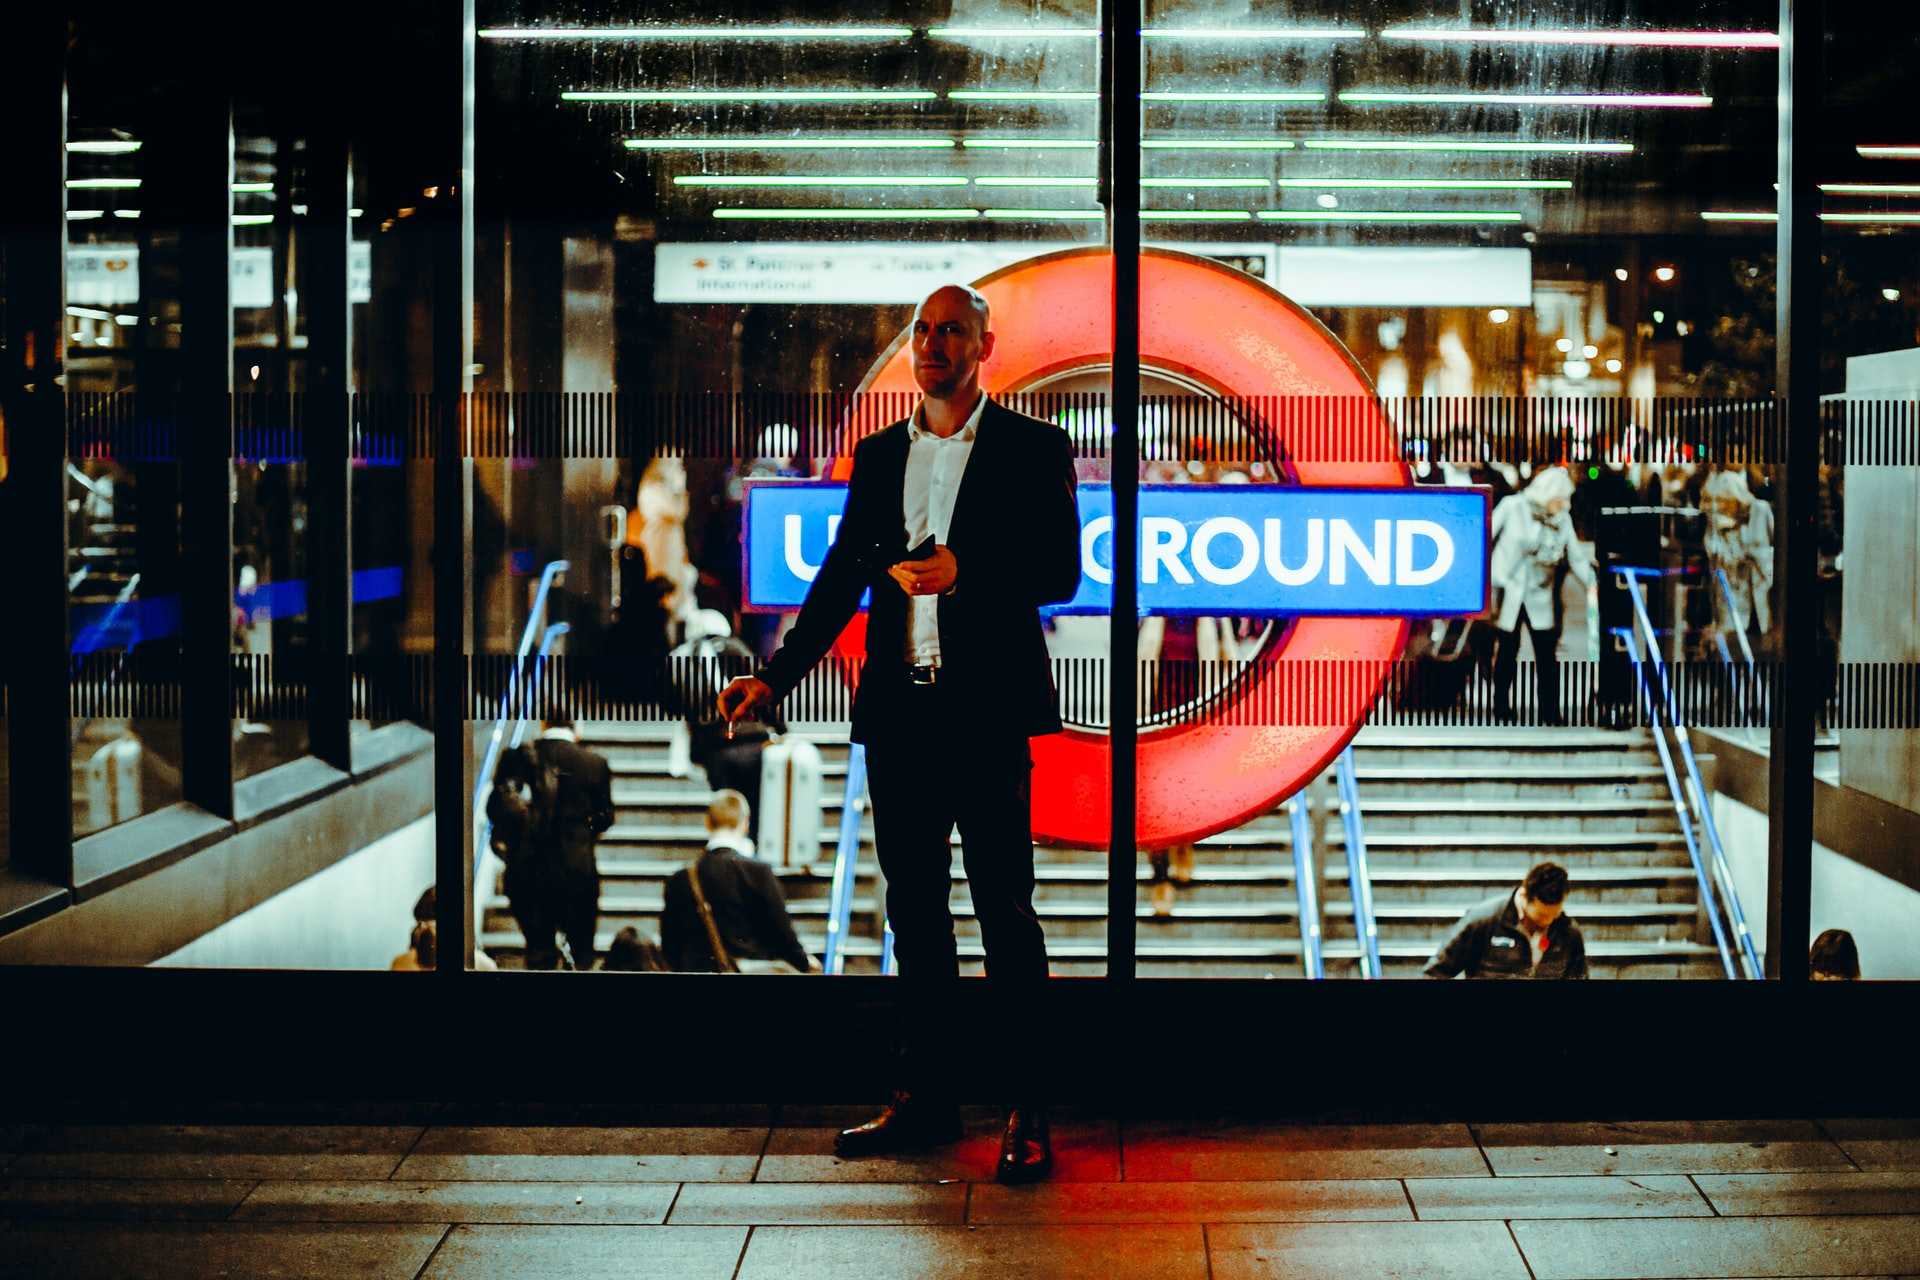 This image shows the neon underground lights from London. Standing infront of the Underground sign is a man in a full formal suit.